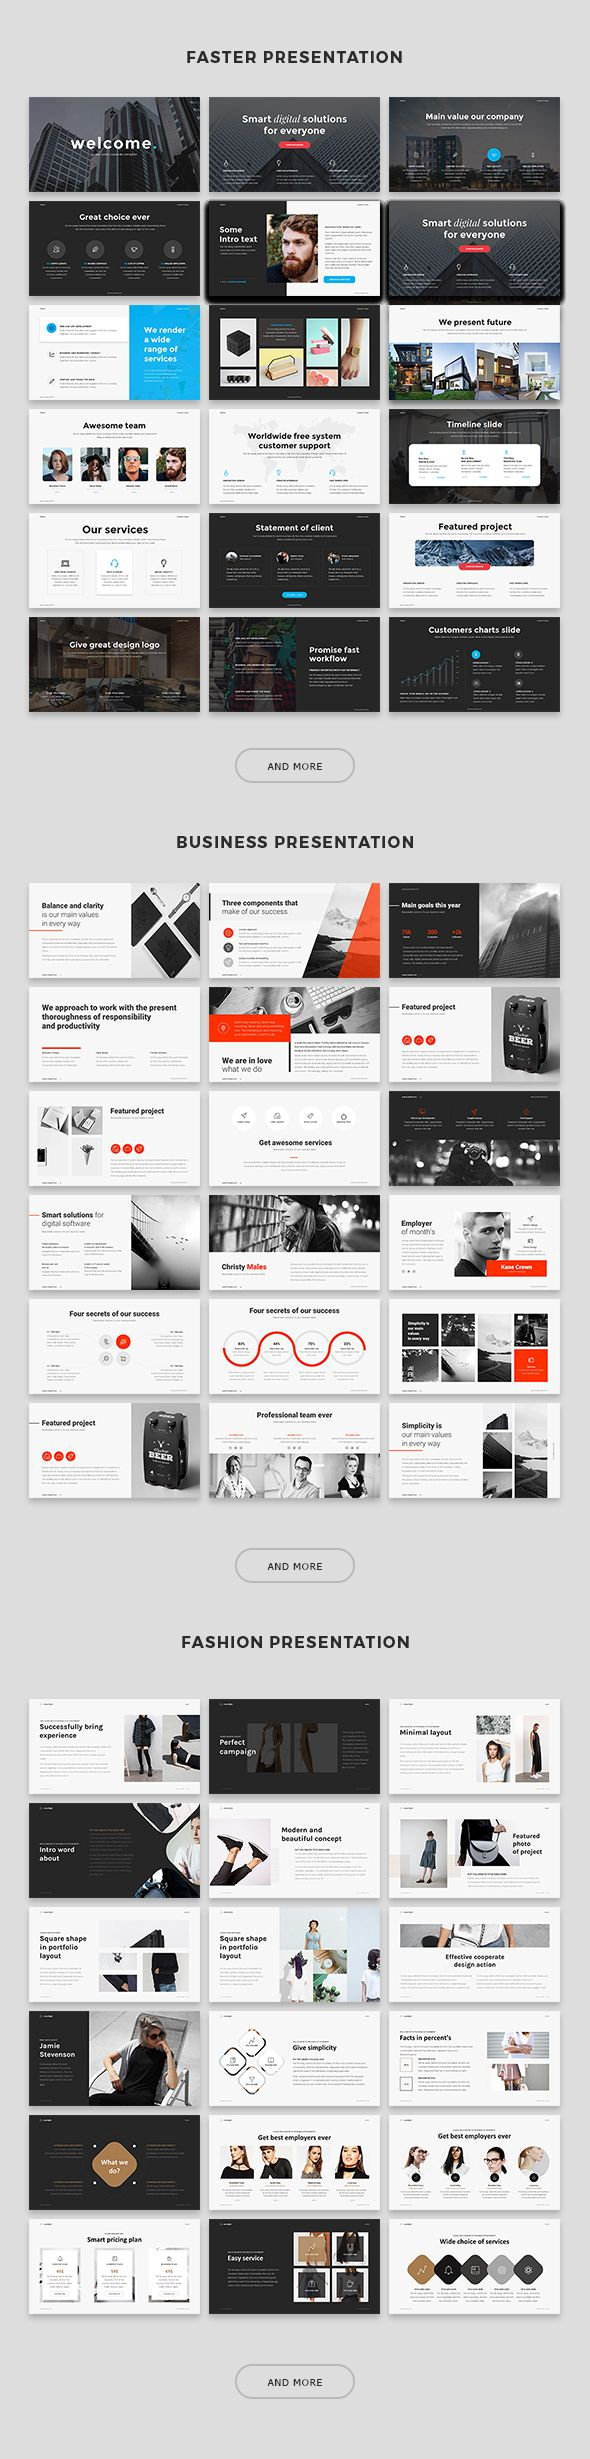 Bundle powerpoint 3 in 1 slide images presentation templates and bundle powerpoint 3 in 1 slide images presentation templates and template toneelgroepblik Image collections